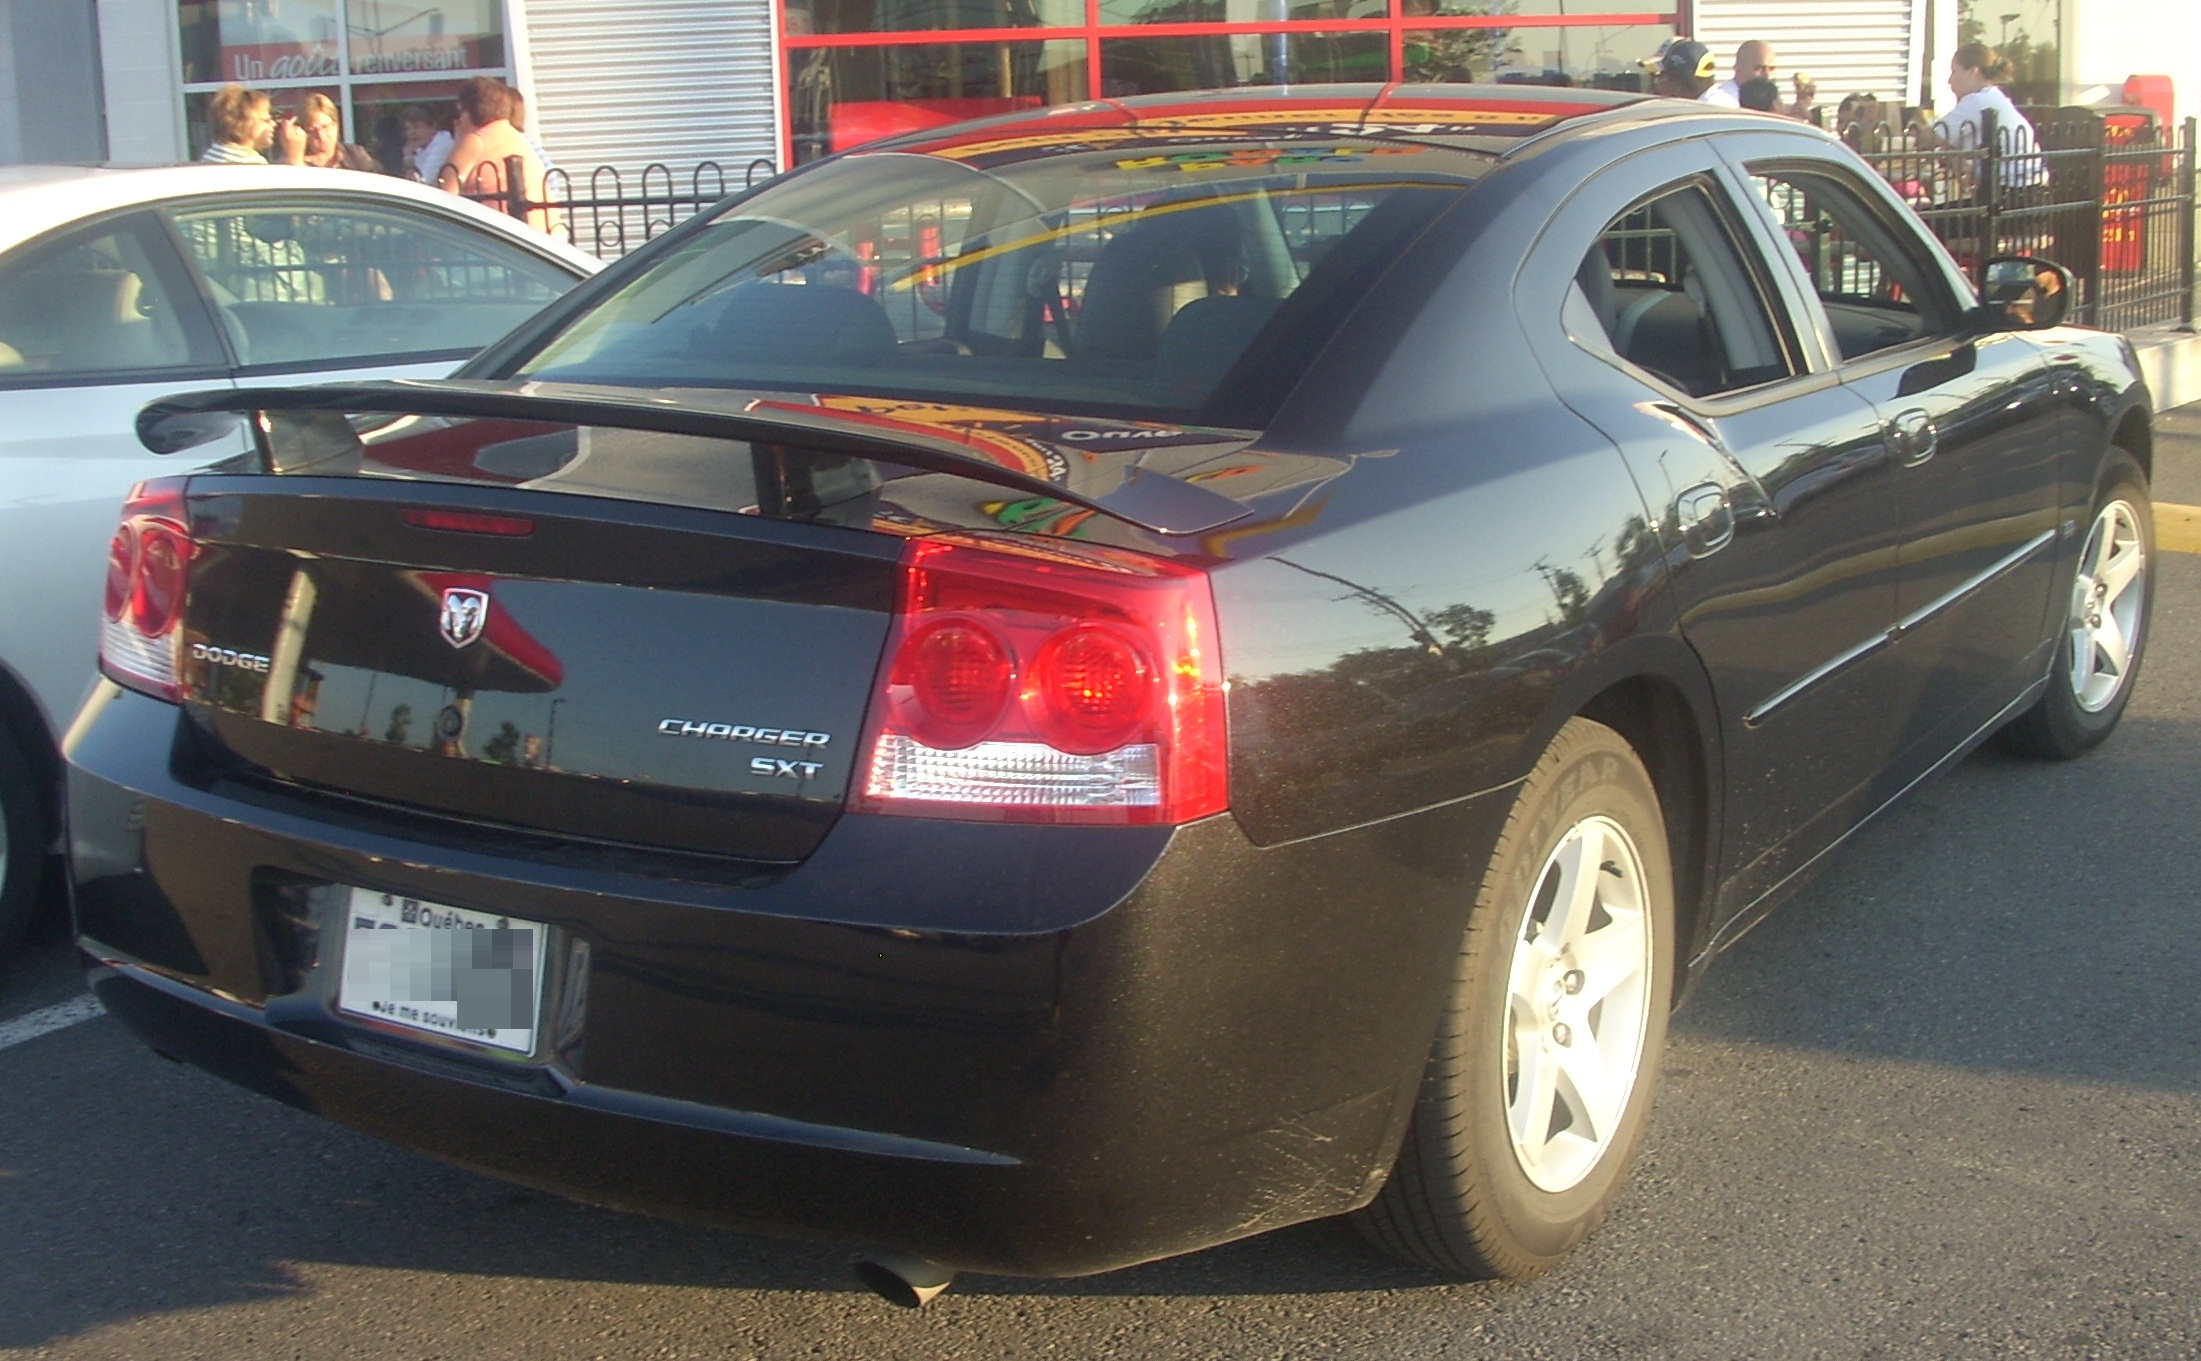 file:'09-'10 dodge charger sxt -- rear - wikimedia commons